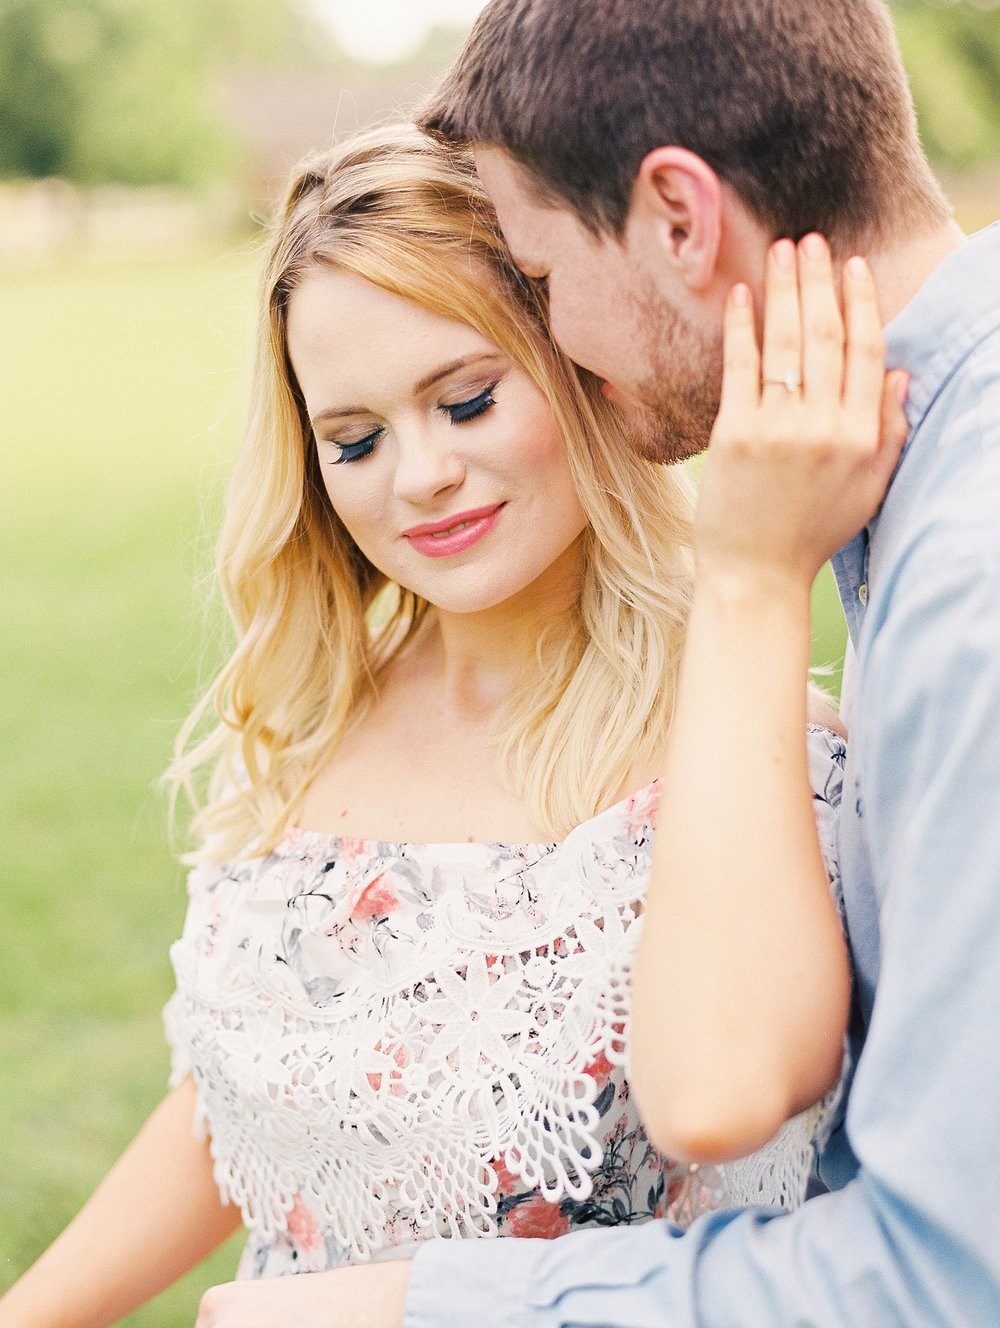 Peach-Orchard-Engagement-Session-Arkansas_0029.jpg